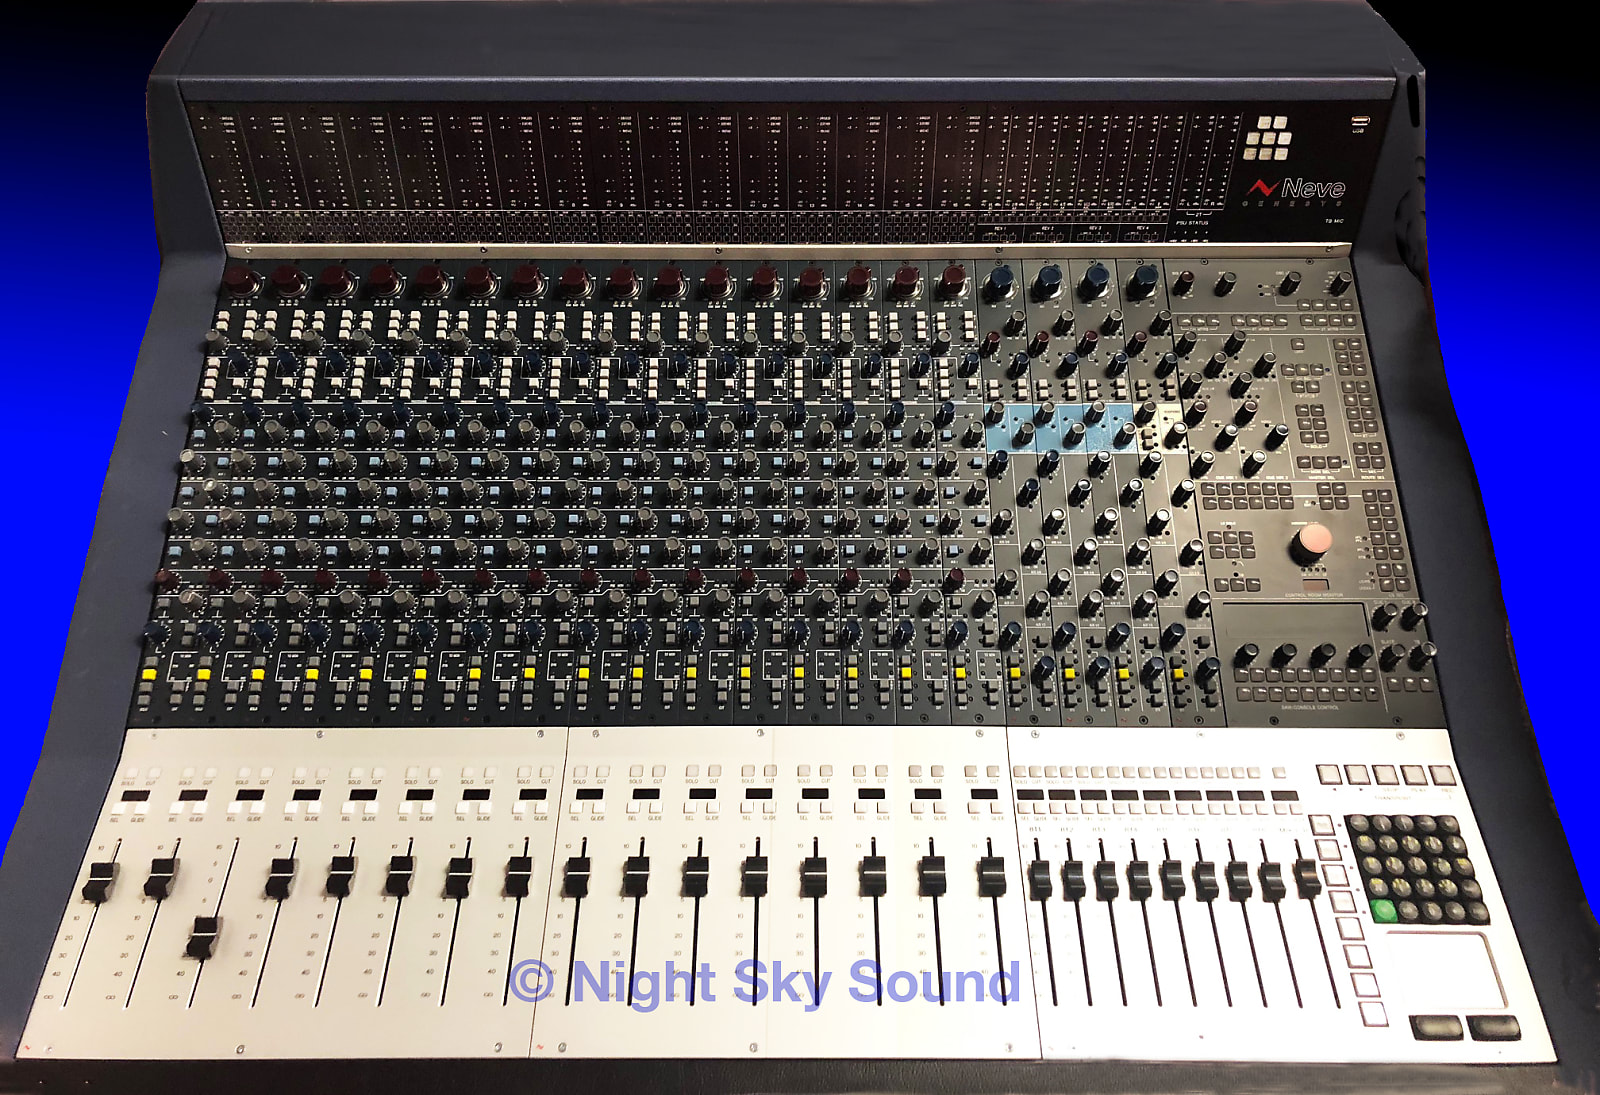 AMS Neve Genesys G32 • 32 Input x 16 Fader • 1073 Mic Pres • LOADED • NEW in Crate • Warranty -SOLD!